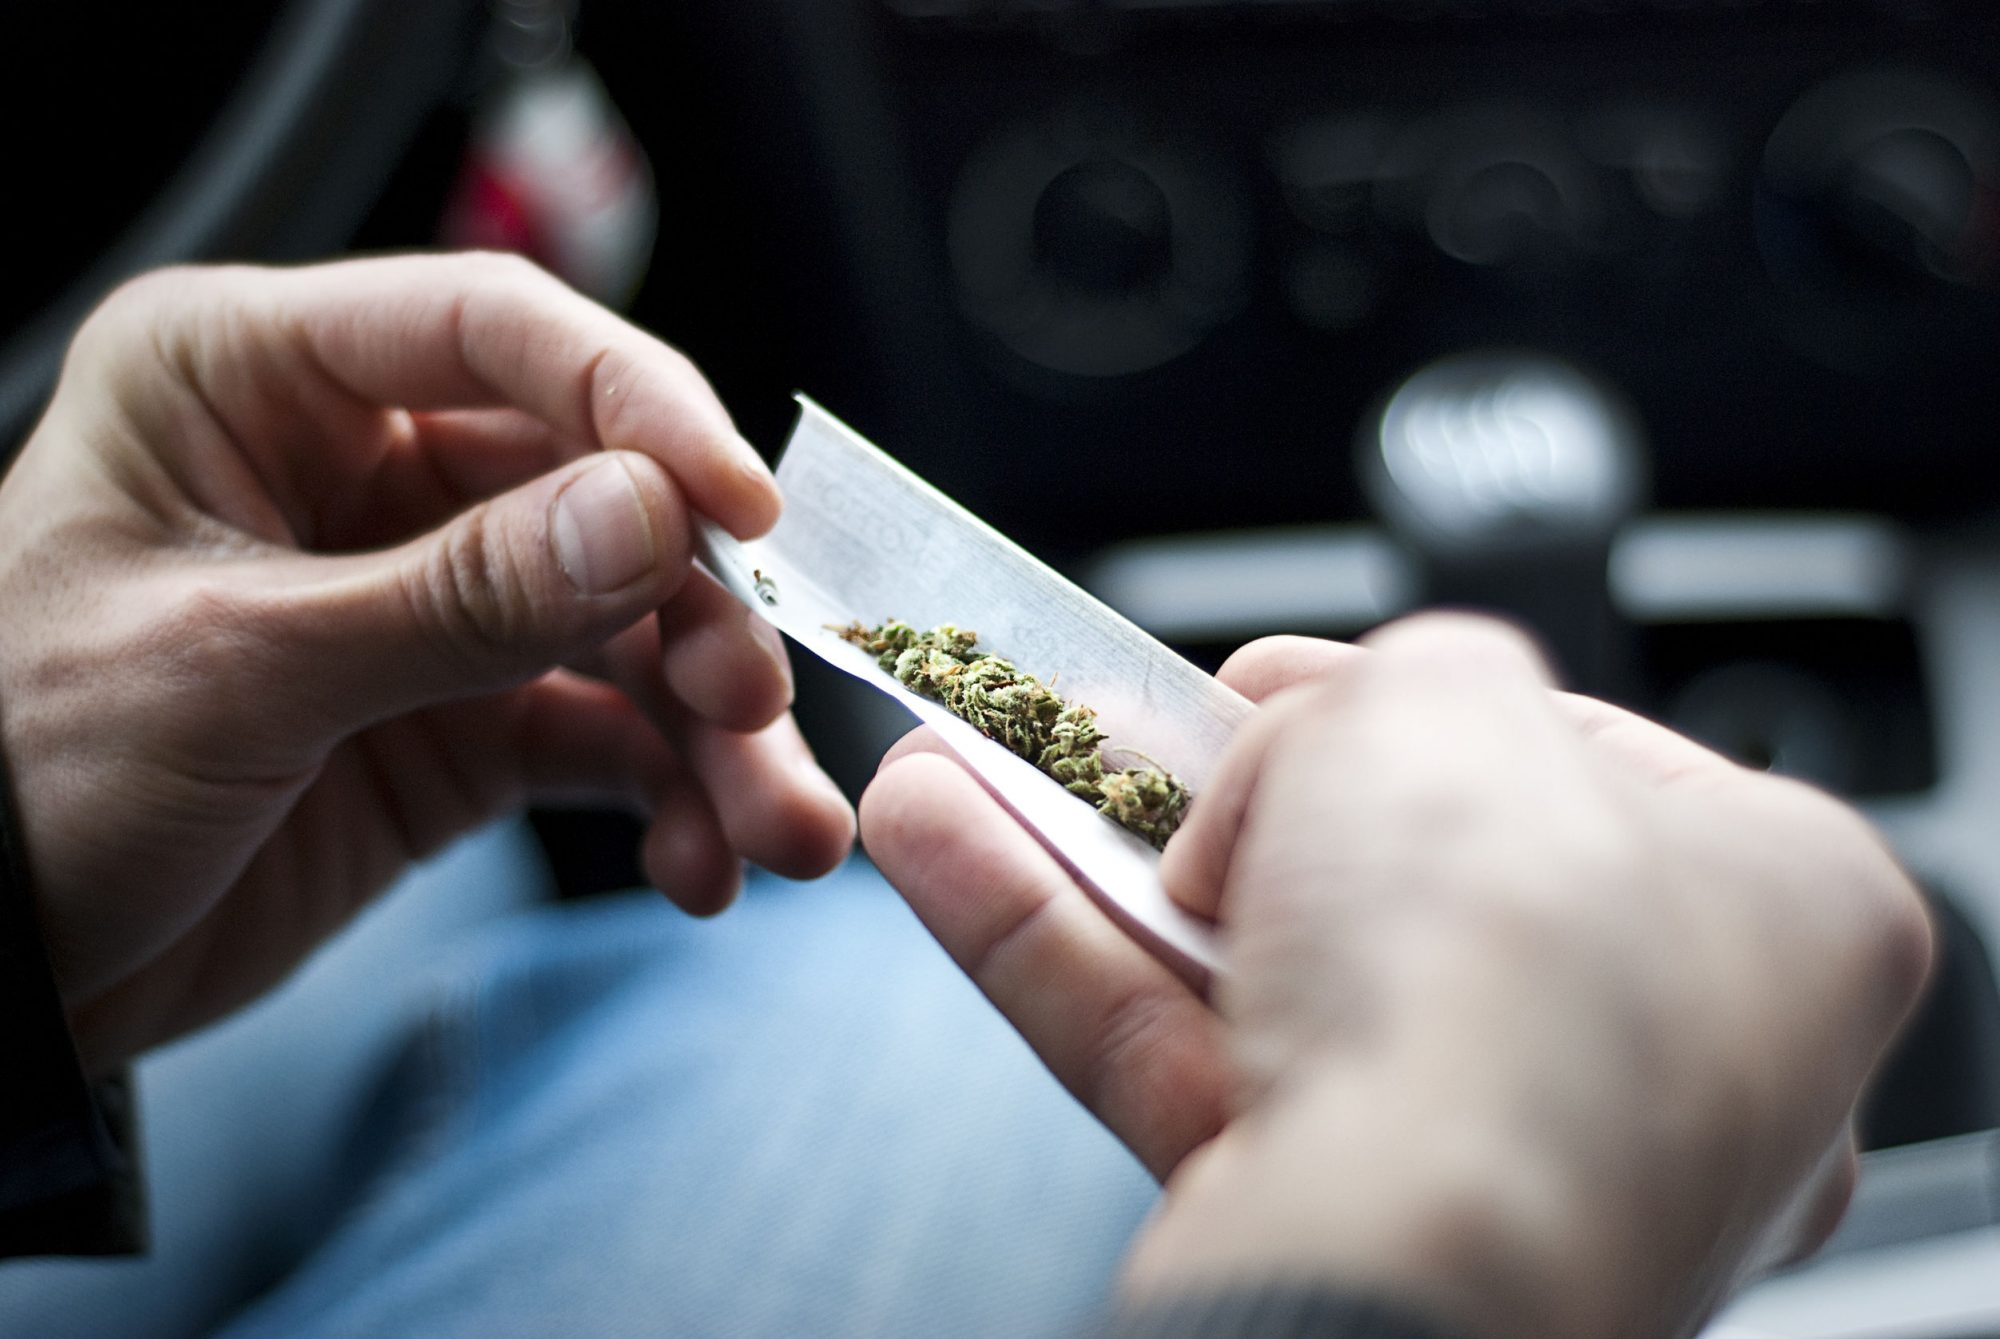 Stoned Driving: How can police tell?